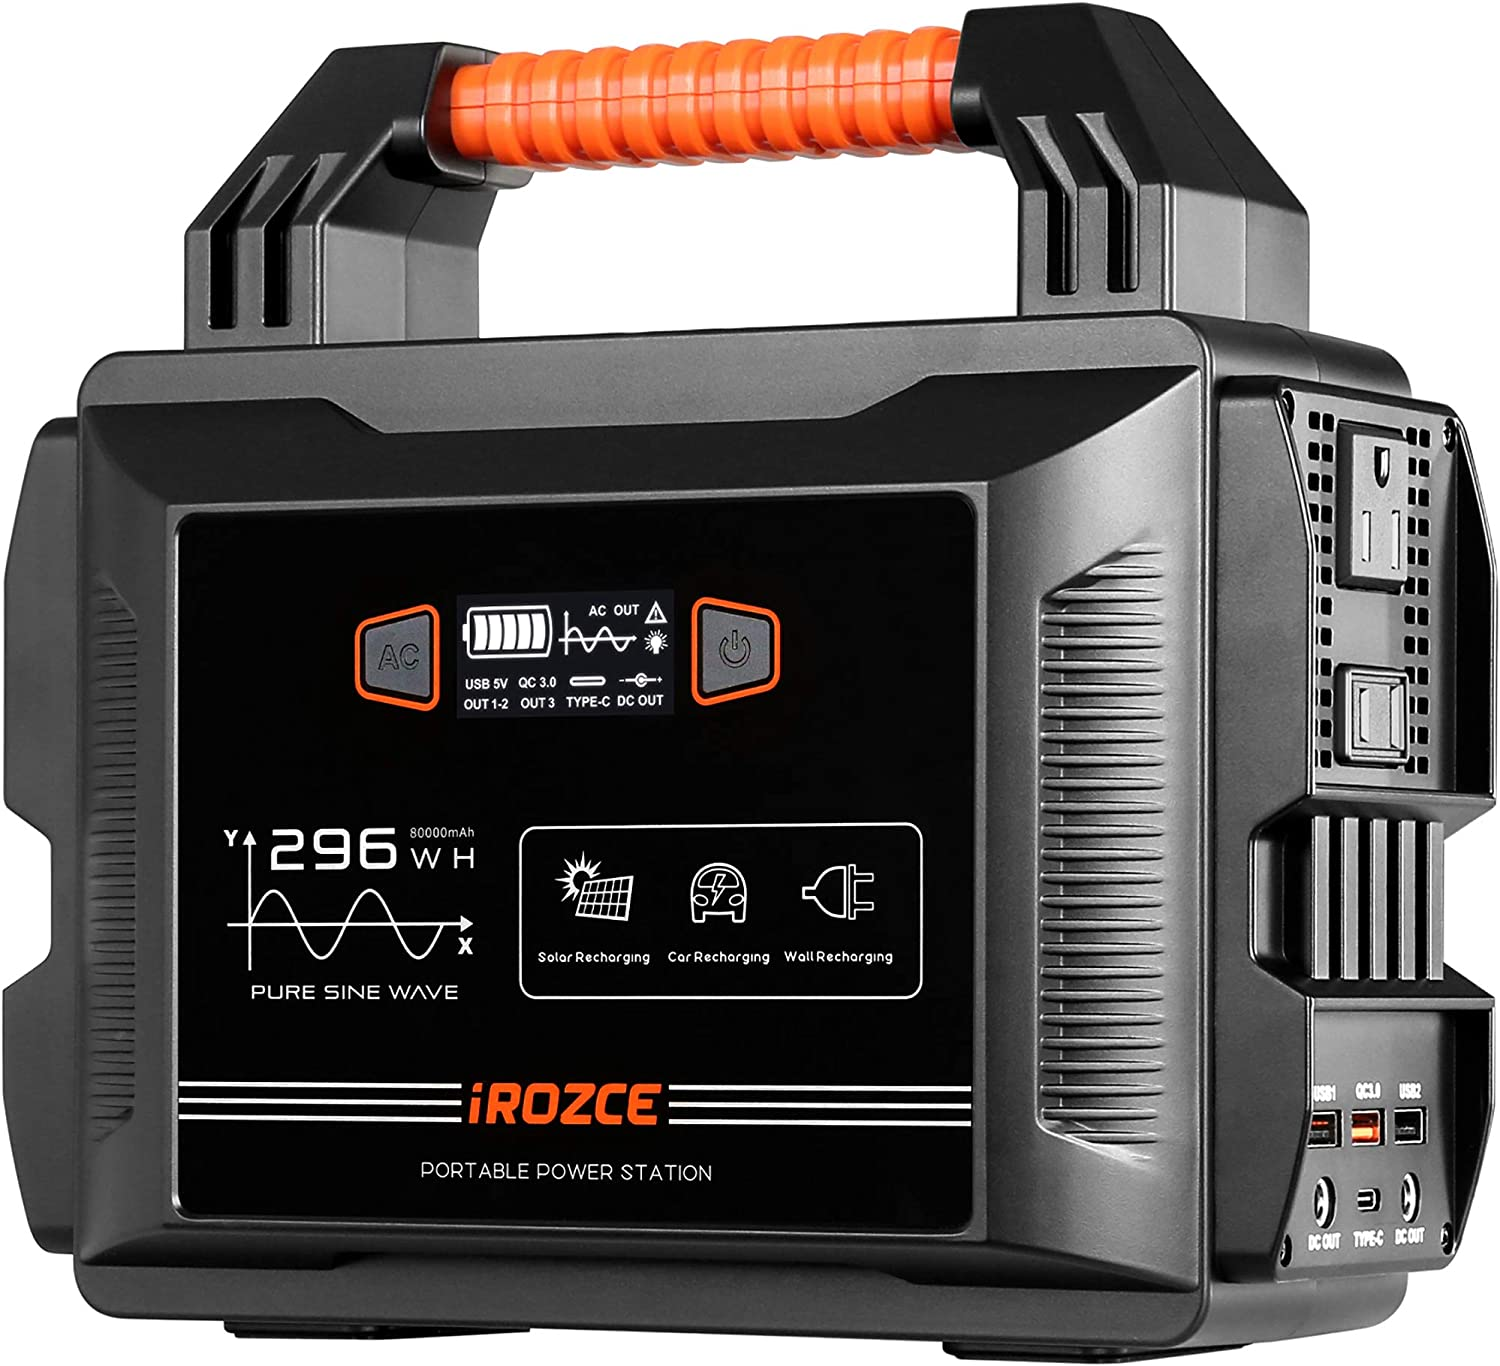 iRozce 300W Portable Power Station, 296Wh Solar Generators with 80000mAh Lithium Battery, CPAP Backup Power Supply with 110V Pure Sine Wave AC Outlet, QC 3.0& Type C, Flashlight for RV, Emergency (Grey-300W)